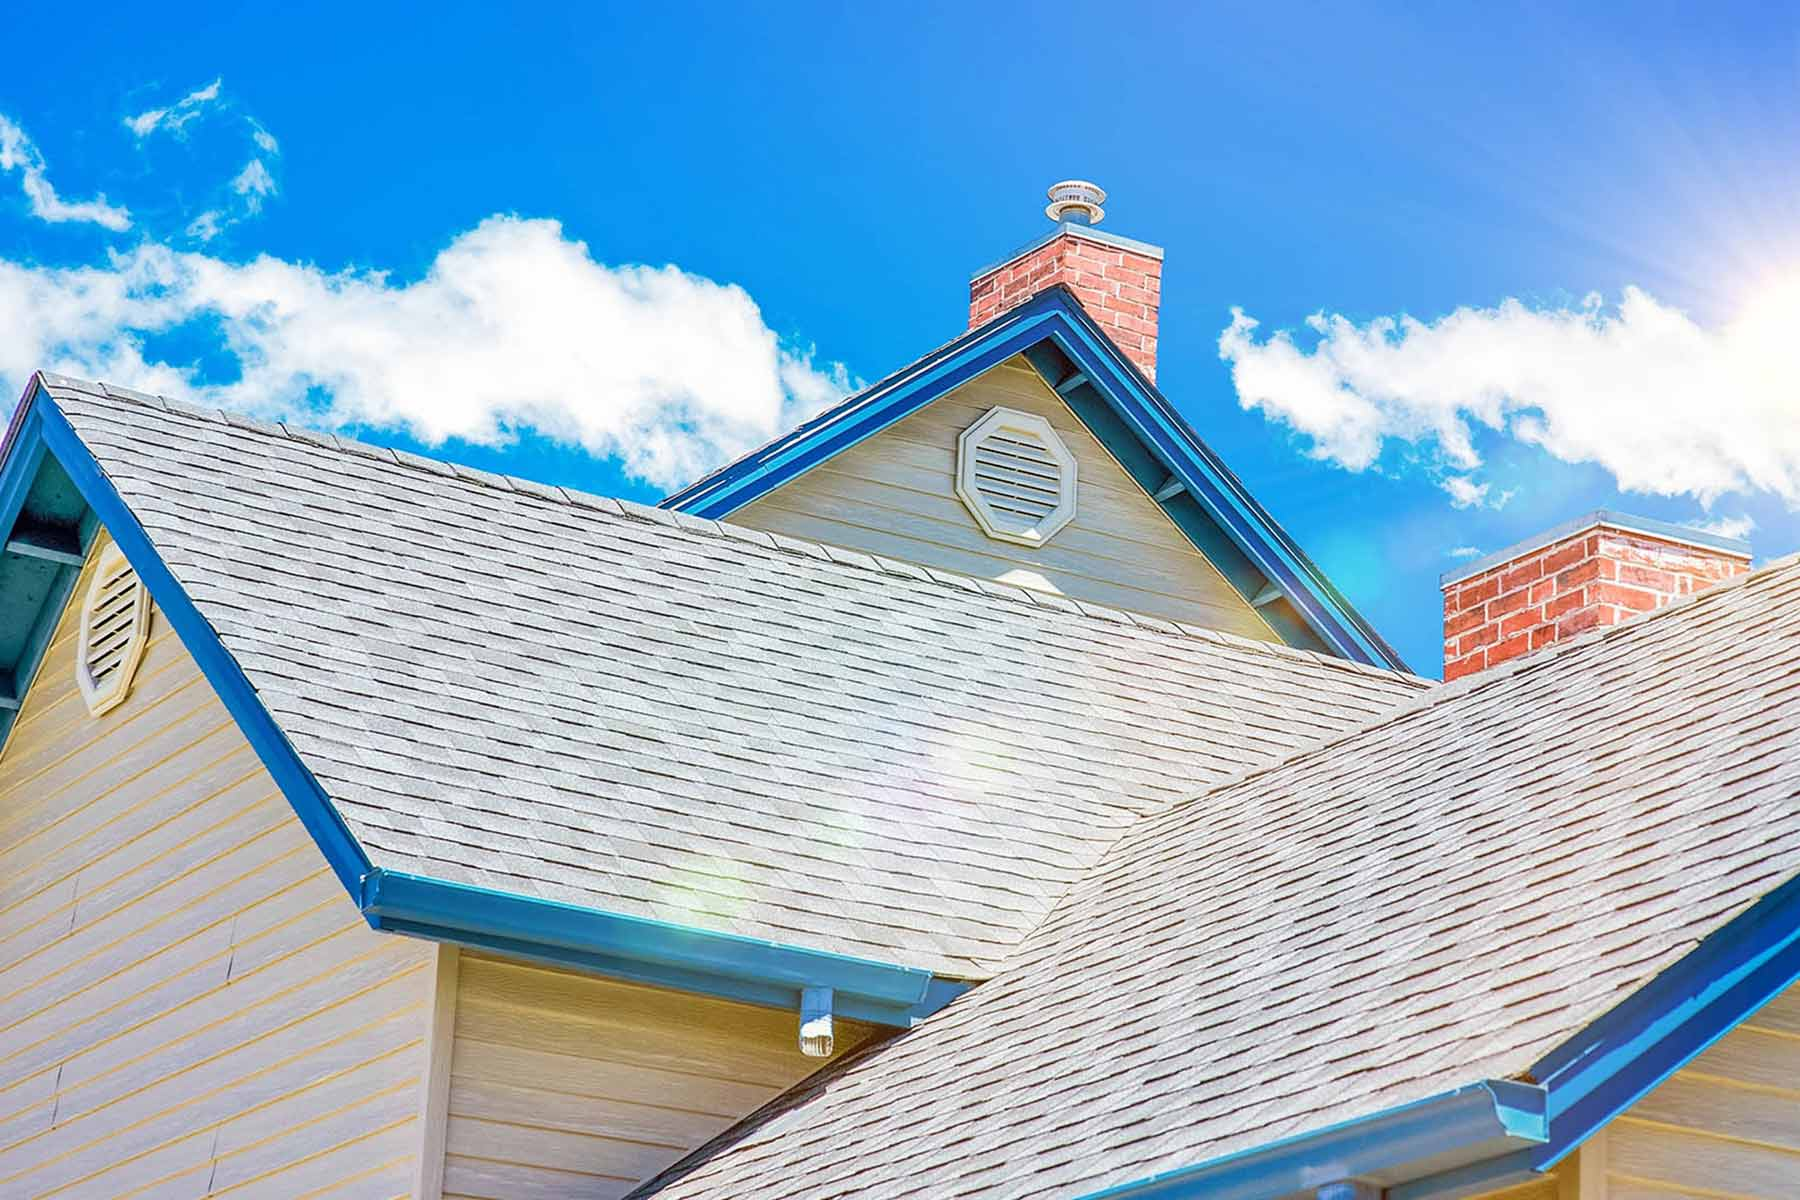 Roof with blue trim